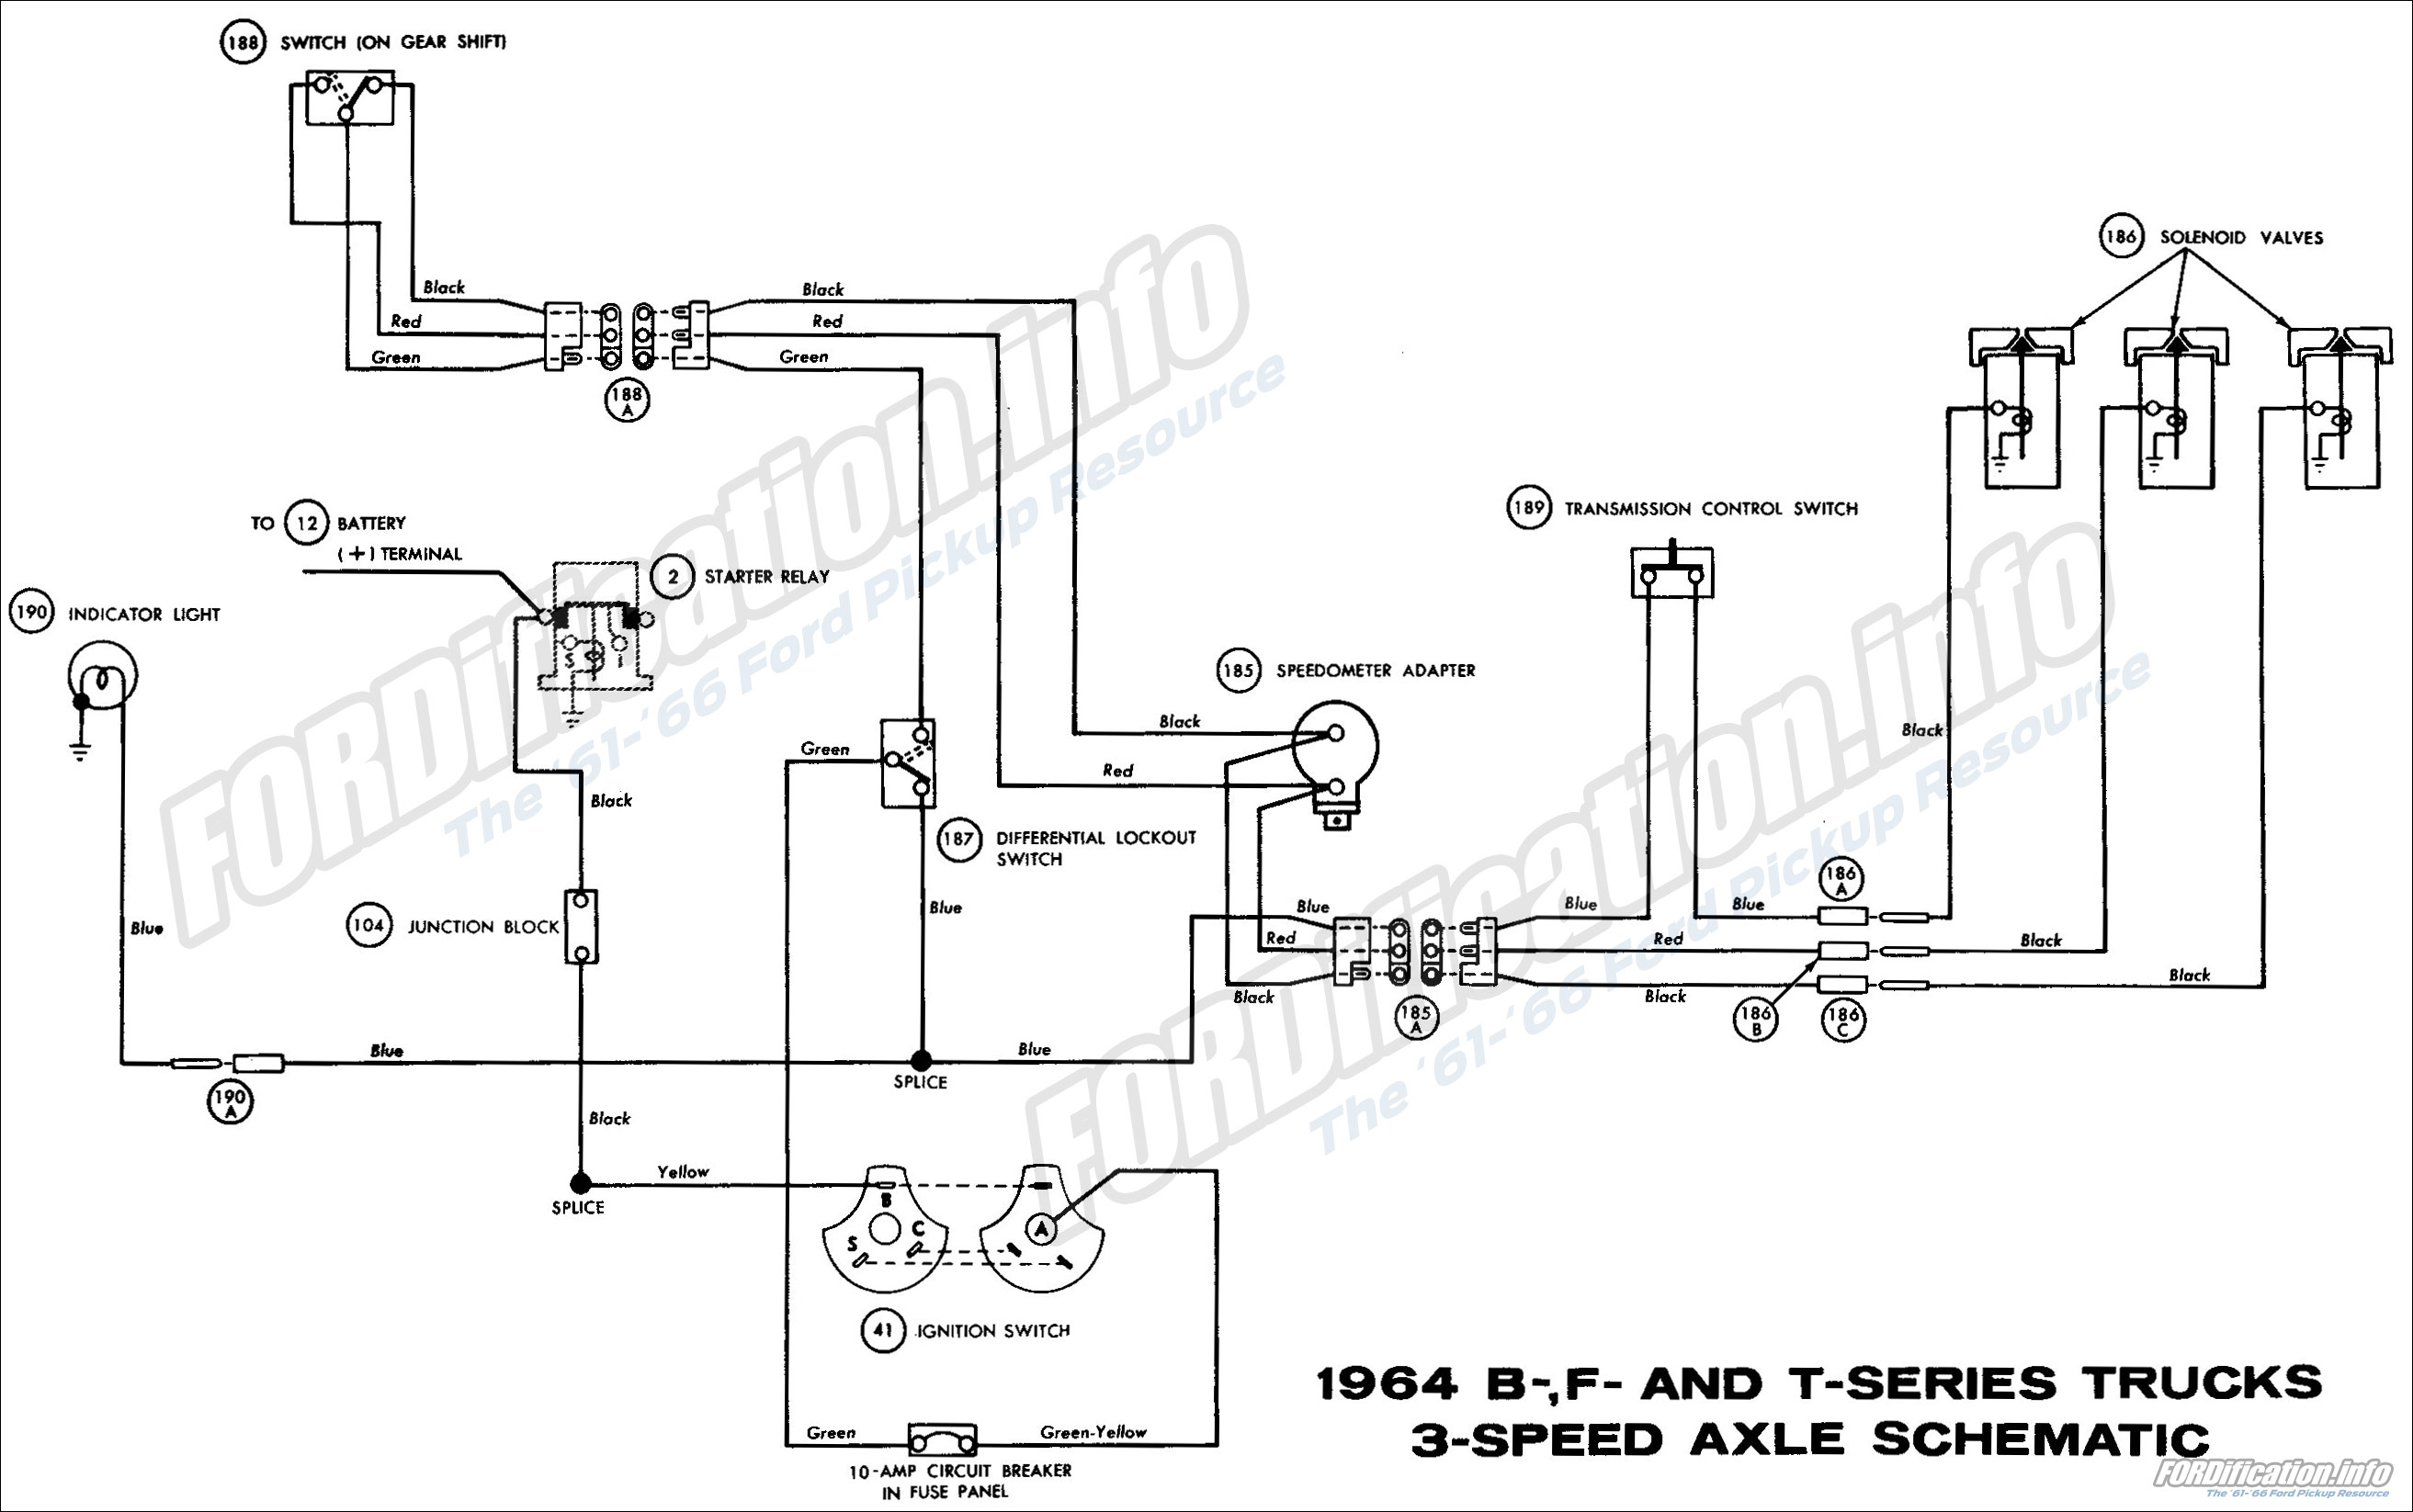 1964 Ford Truck Wiring Diagrams The 61 66 Lighting Circuit Diagram For Two Lights F100 A B F And T Series 3 Speed Axle Schematic